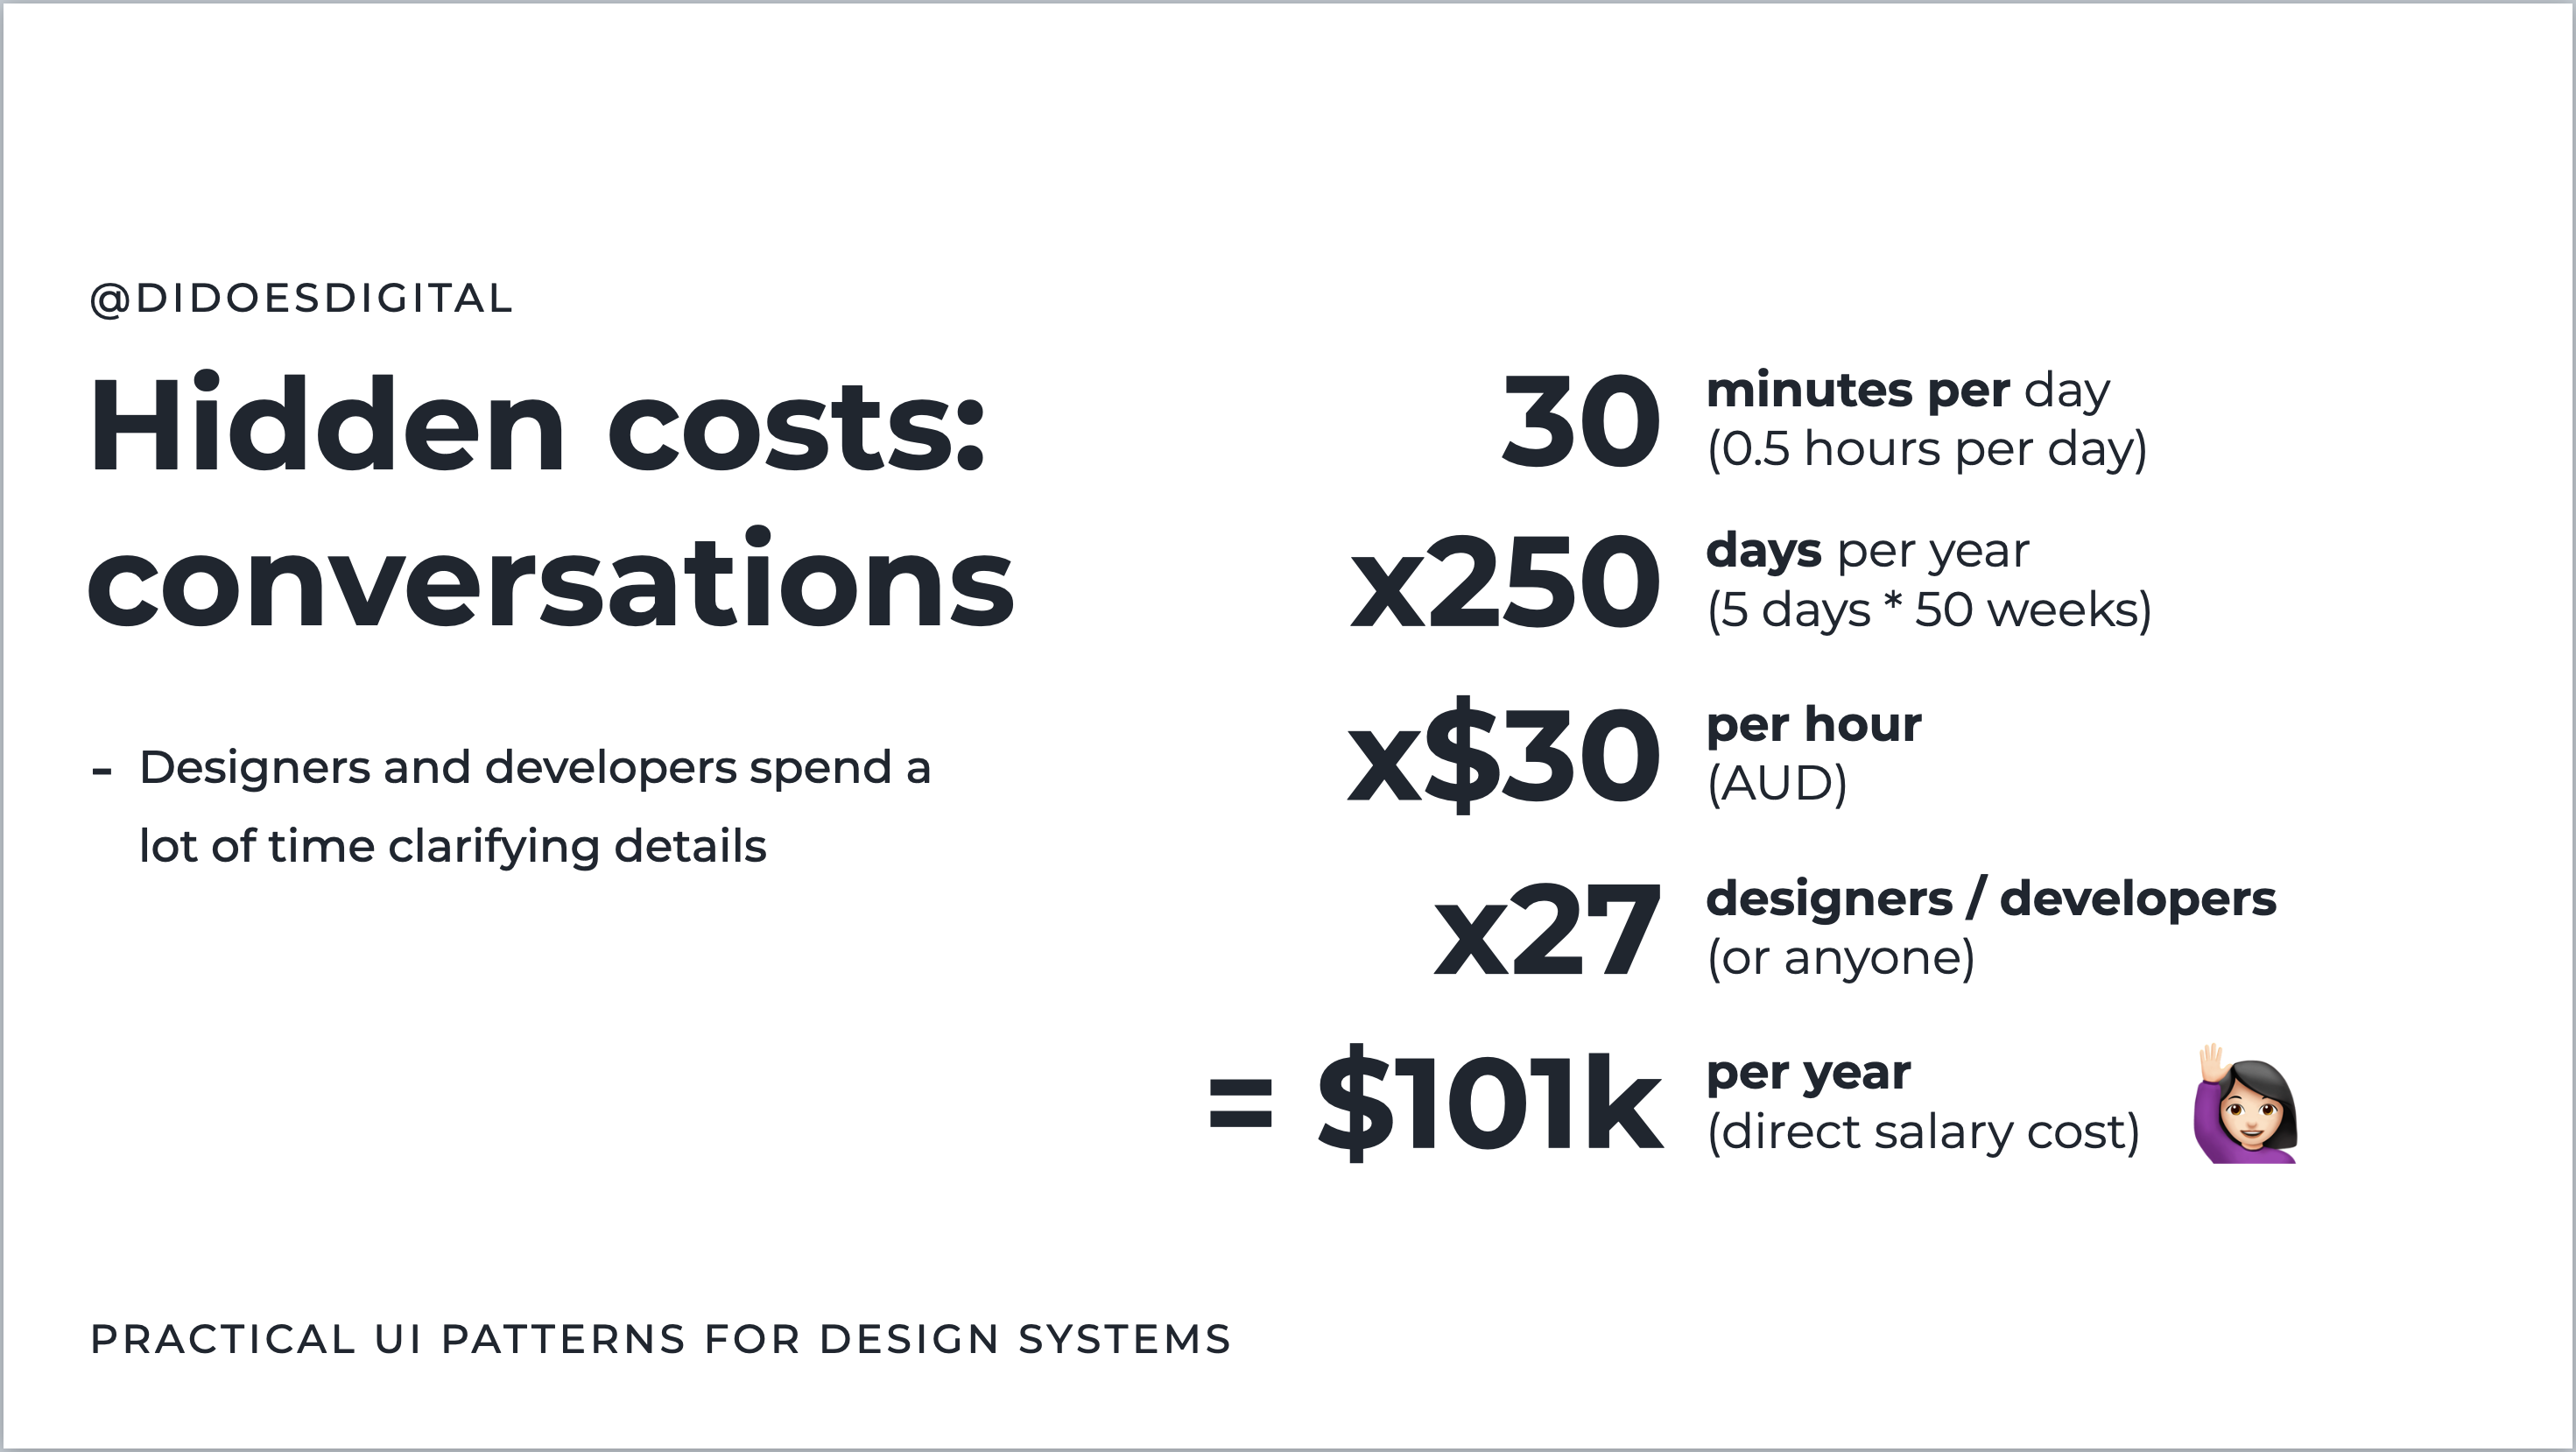 Hidden cost of conversation: 30 min per day * 250 days per year * $30 / hour * 27 designers & developers = $101,000 per year.